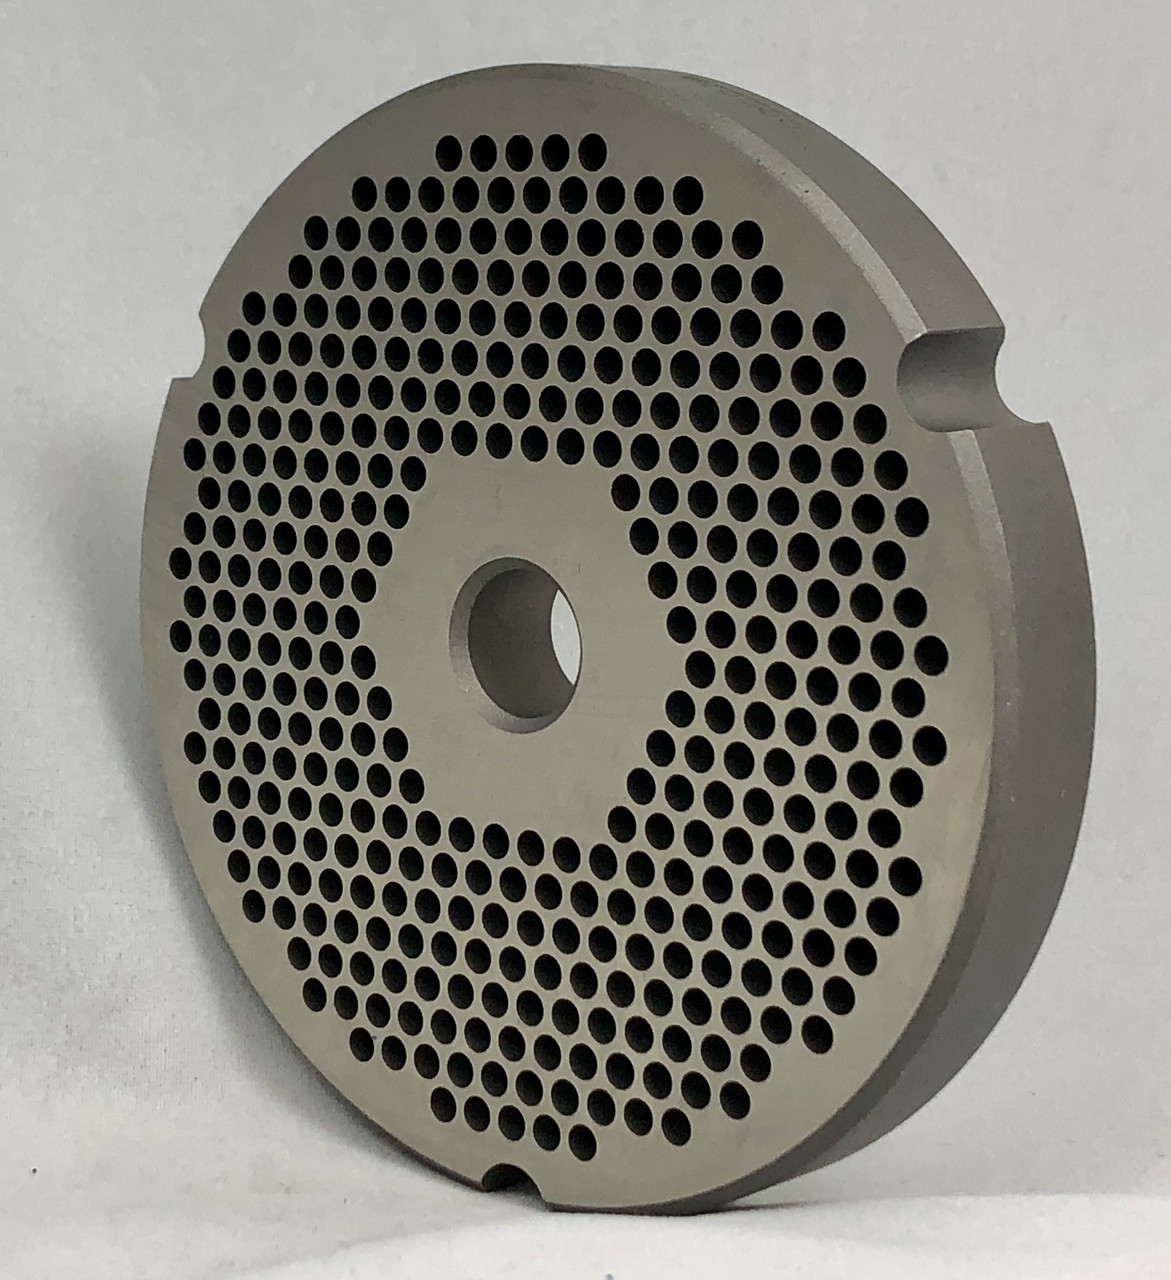 #32 Speco Meat Grinder Plate with 1/8'' Holes - Reversible & Hubbed Plate - 102200 & 104213